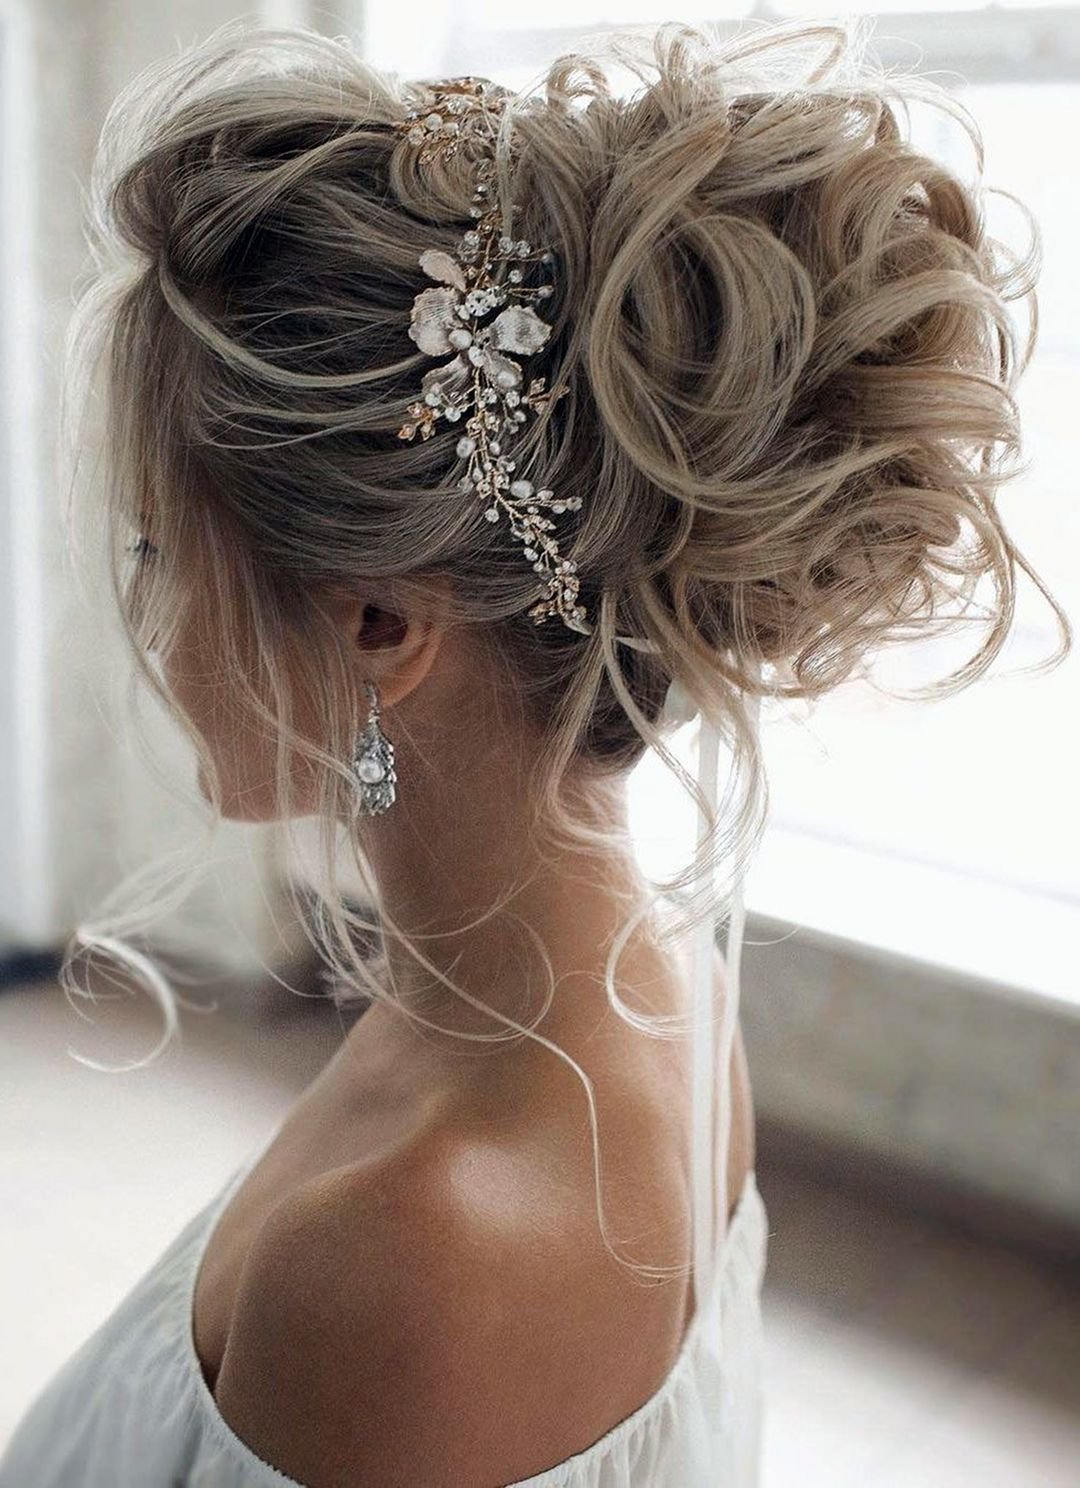 10 Charming Bridesmaid Hairstyles Ideas You Can Try Fashions Nowadays Summer Wedding Hairstyles Wedding Hairstyles For Long Hair Long Hair Styles